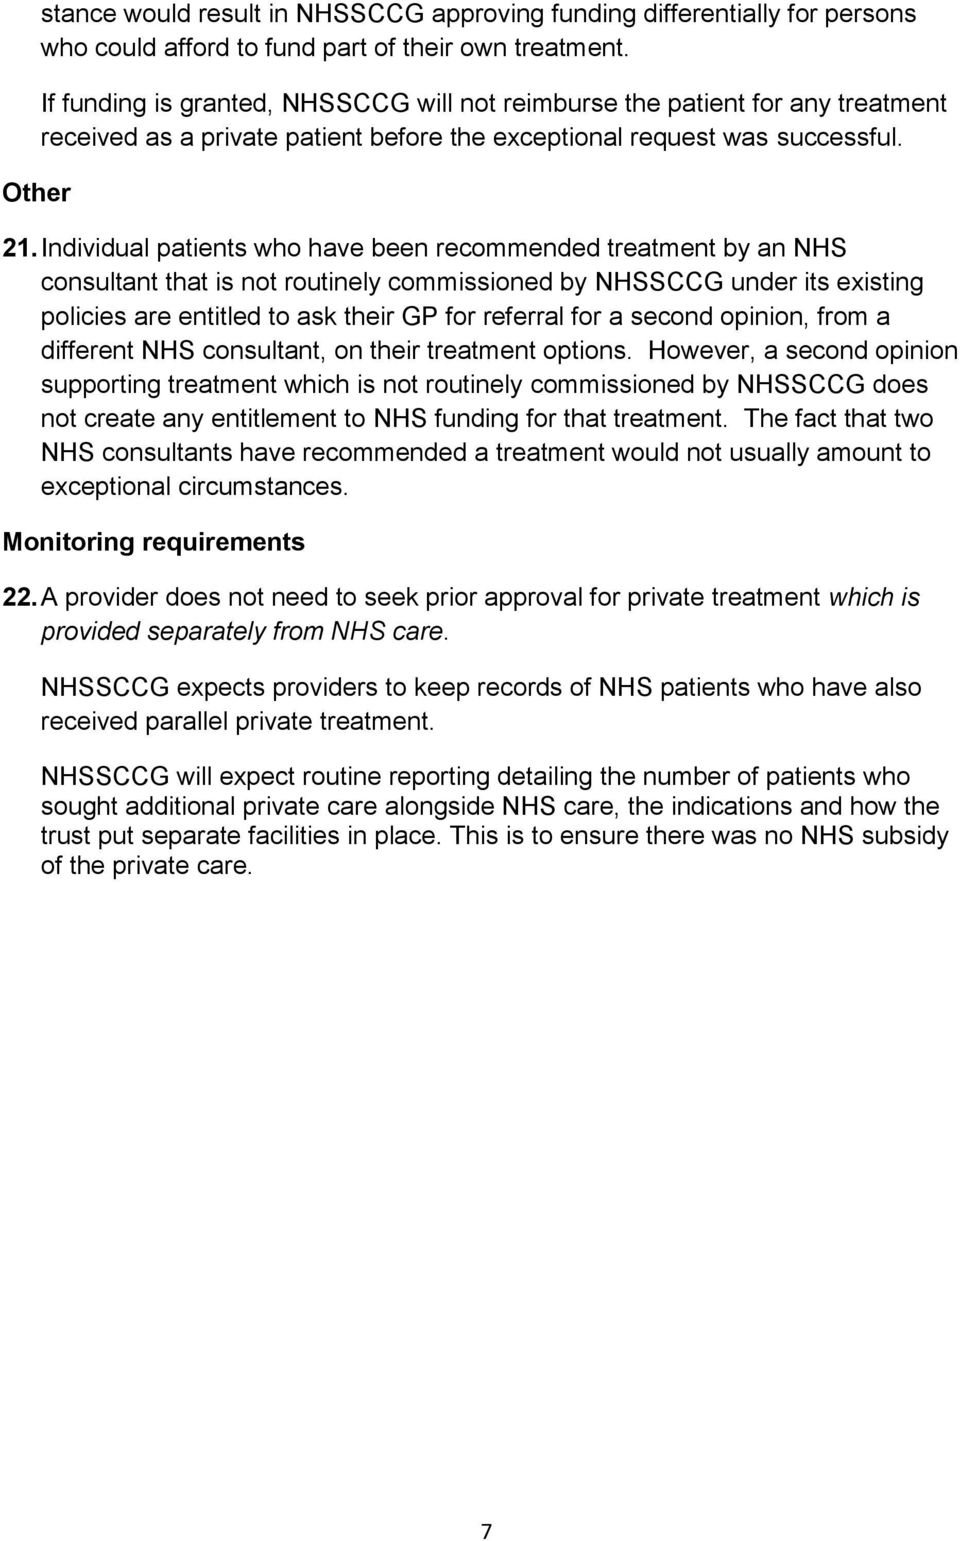 Individual patients who have been recommended treatment by an NHS consultant that is not routinely commissioned by NHSSCCG under its existing policies are entitled to ask their GP for referral for a